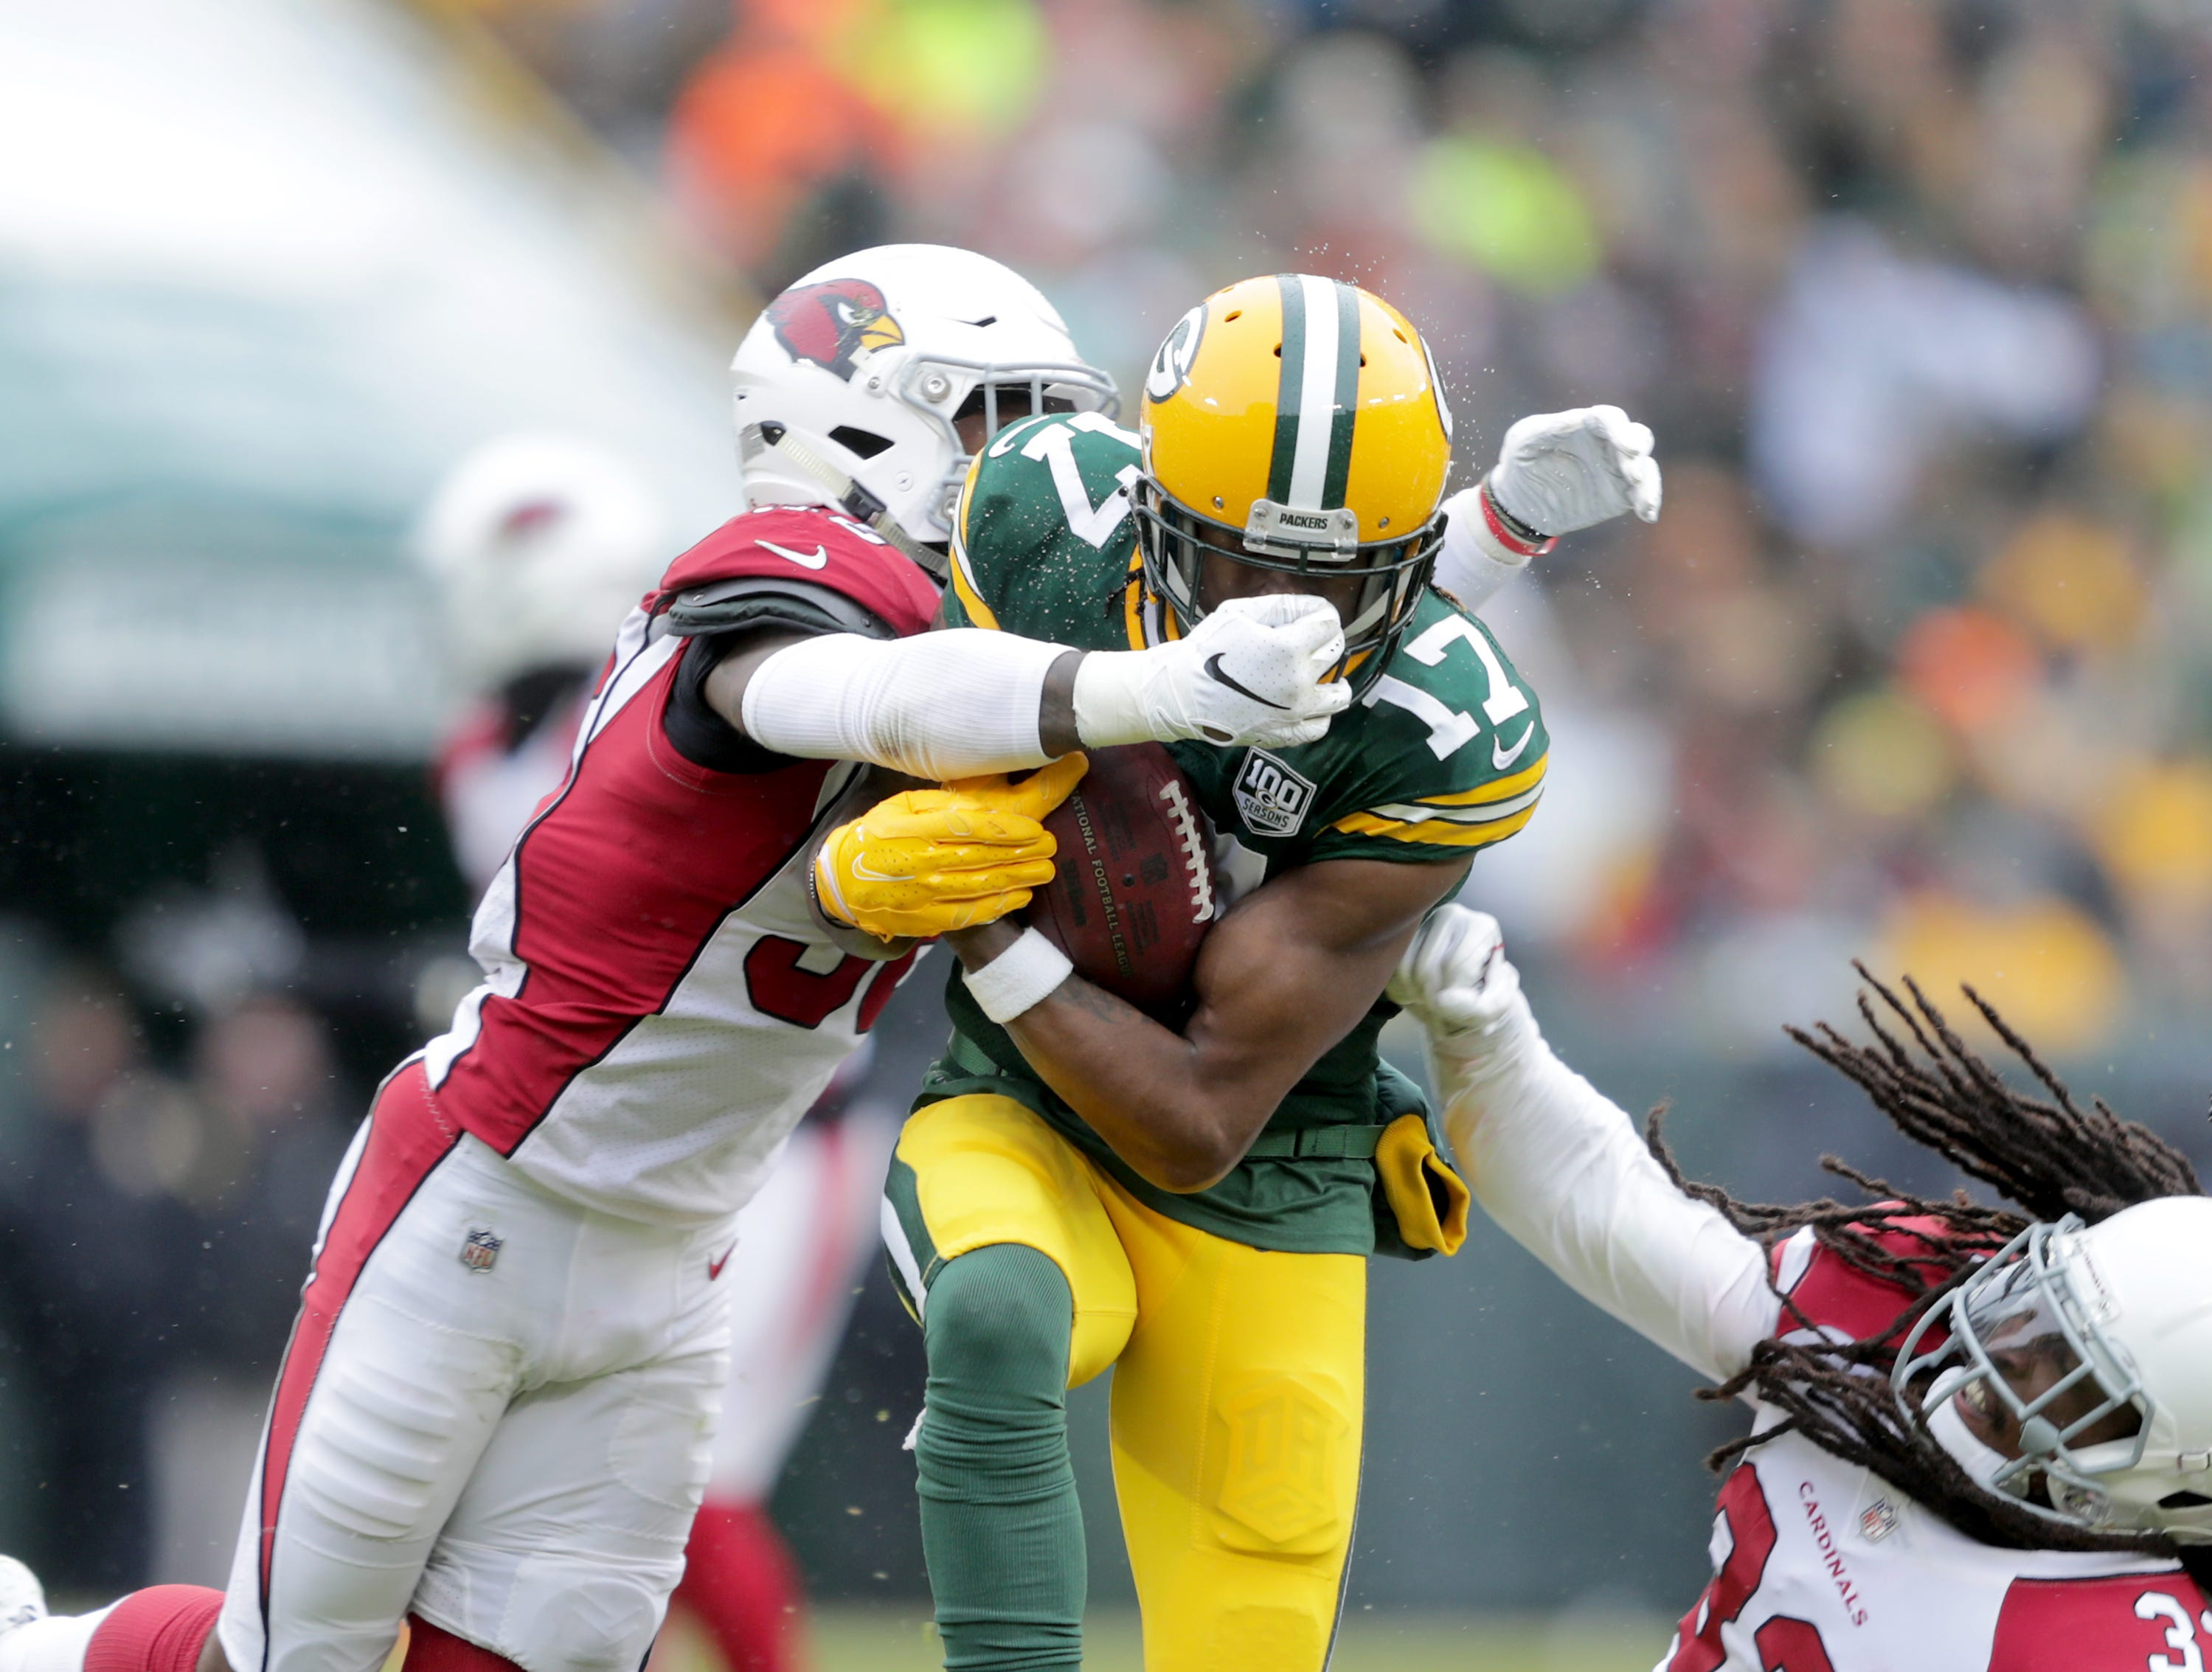 Green Bay Packers wide receiver Davante Adams is tackled by Arizona Cardinals strong safety Budda Baker during  the second quarter of their football game on Sunday, December 2, 2018, at Lambeau Field in Green Bay, Wis.